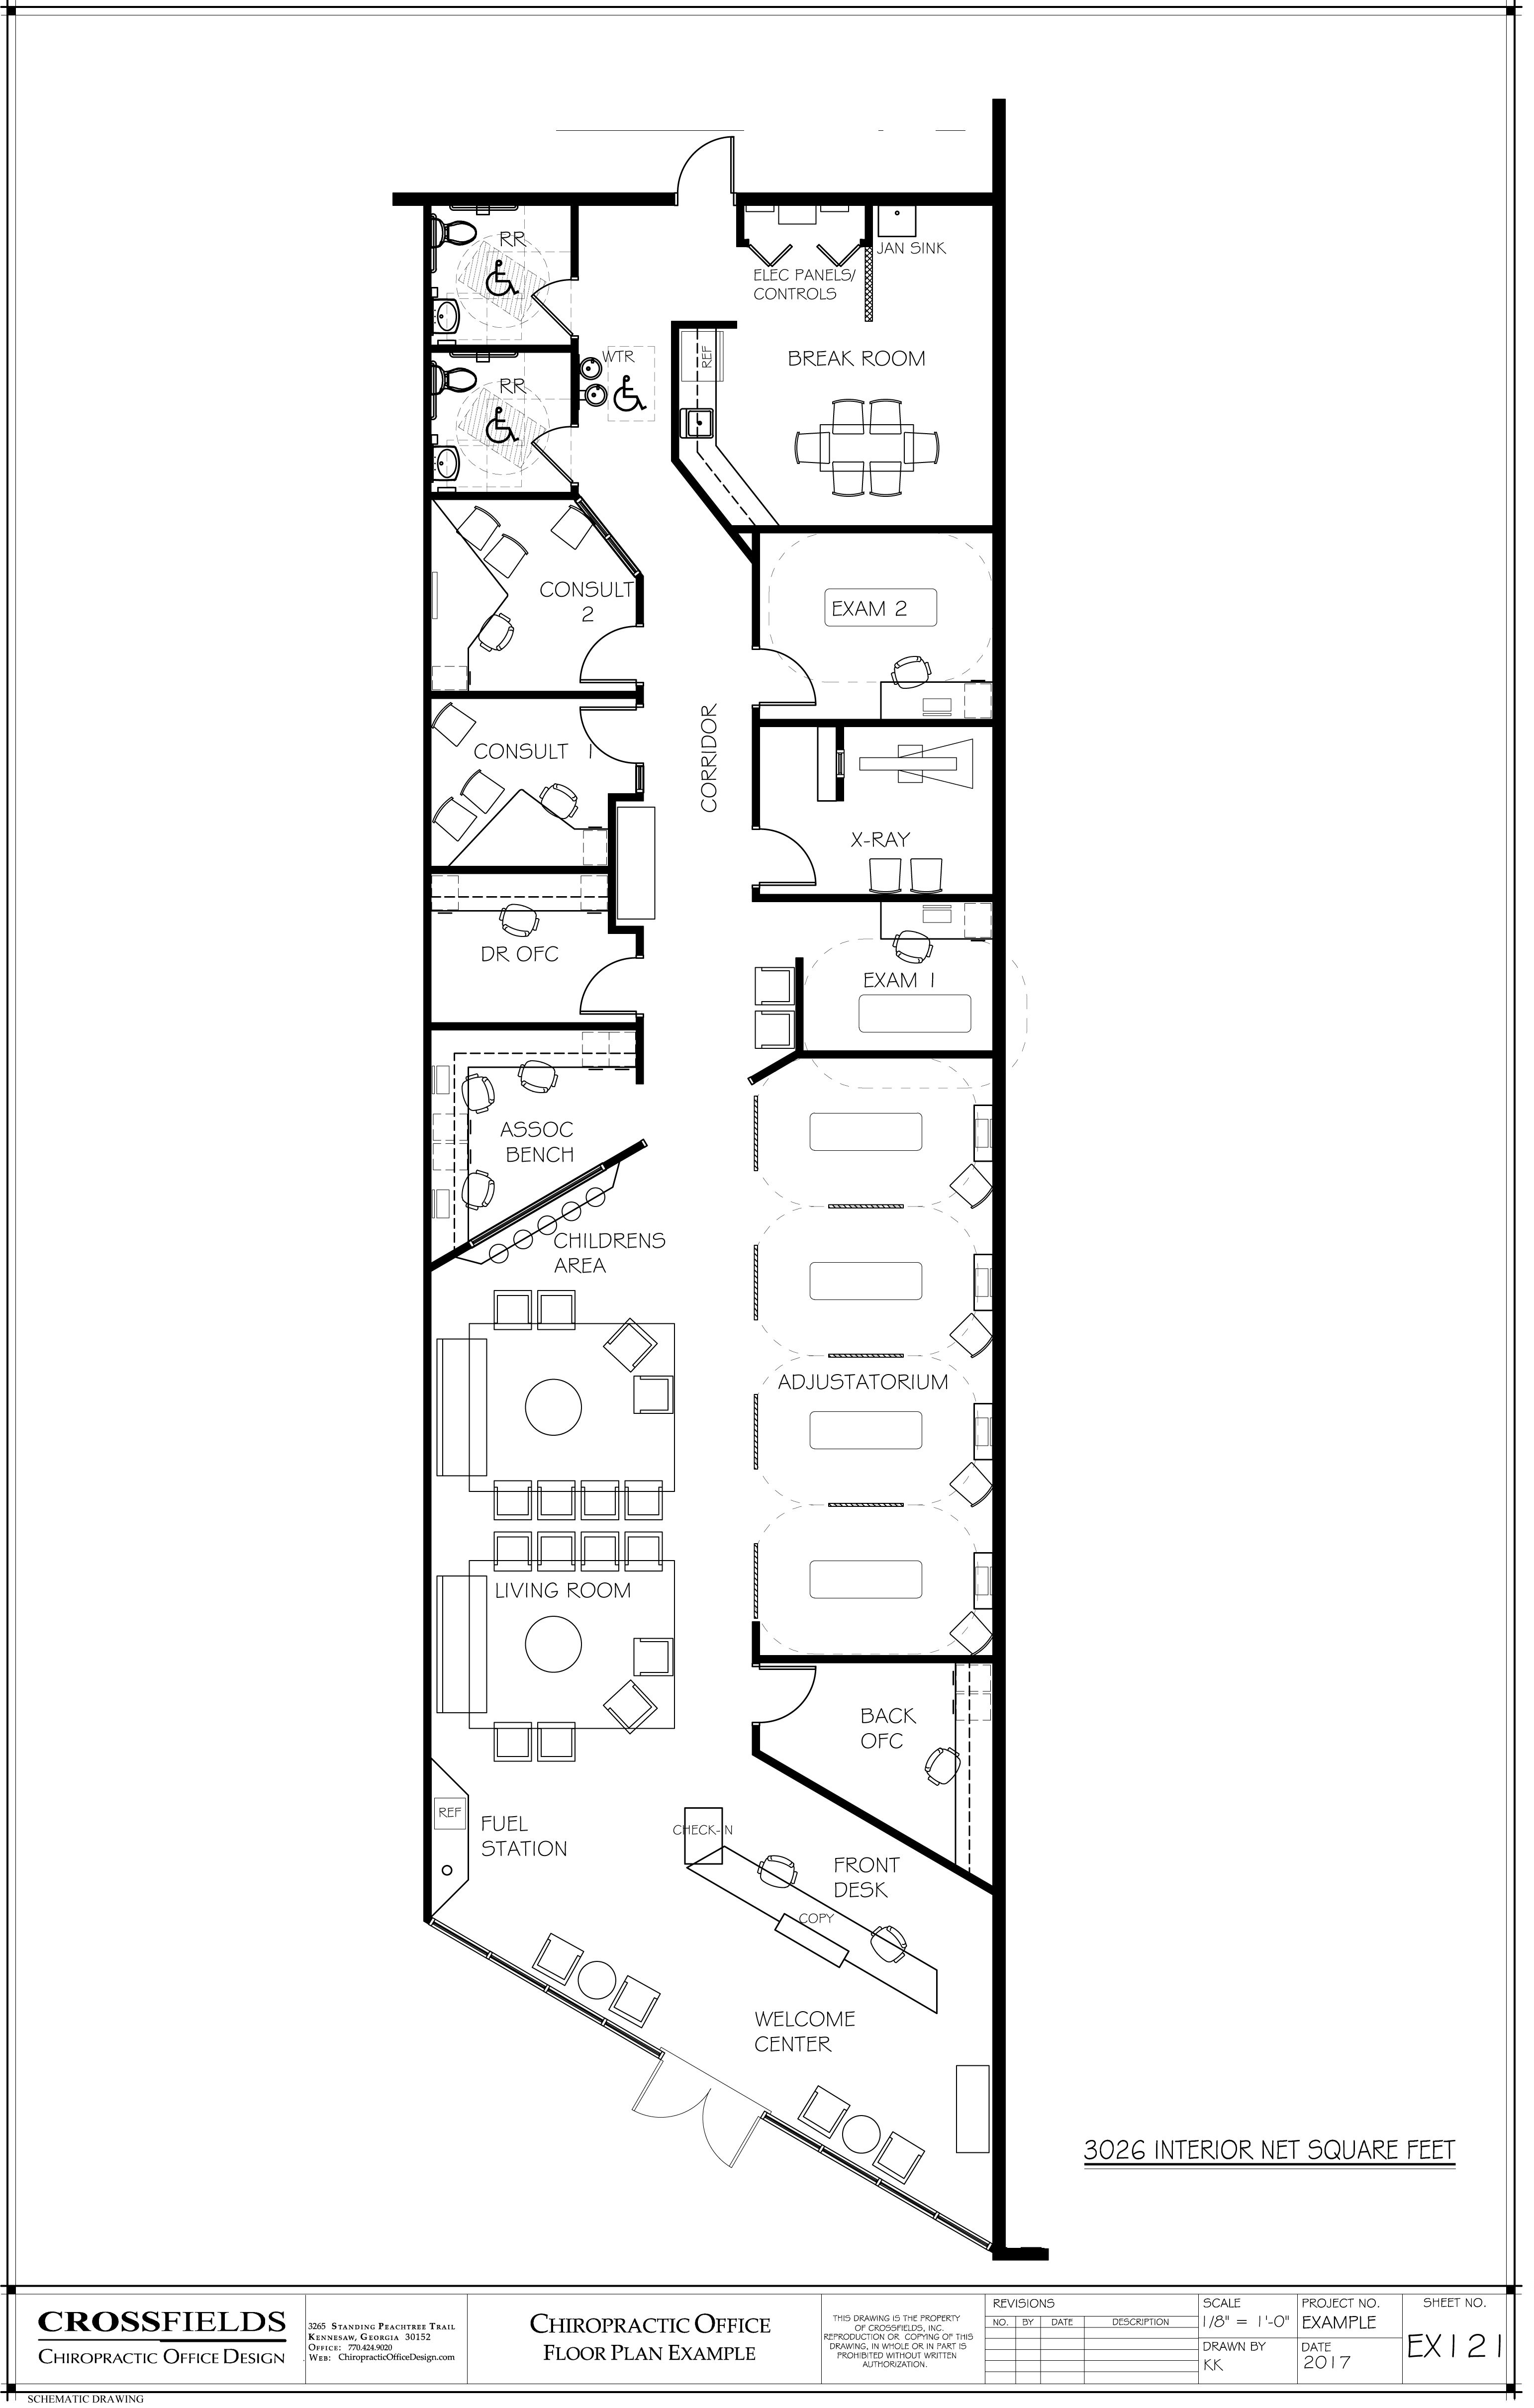 chiropractic office floor plans a dormitory and hostels Open Space Diagram ex le floor plan chiropractic ofiice with spinal care open adjustatorium living room consult multi doctor chiropracticofficedesign interiordesign